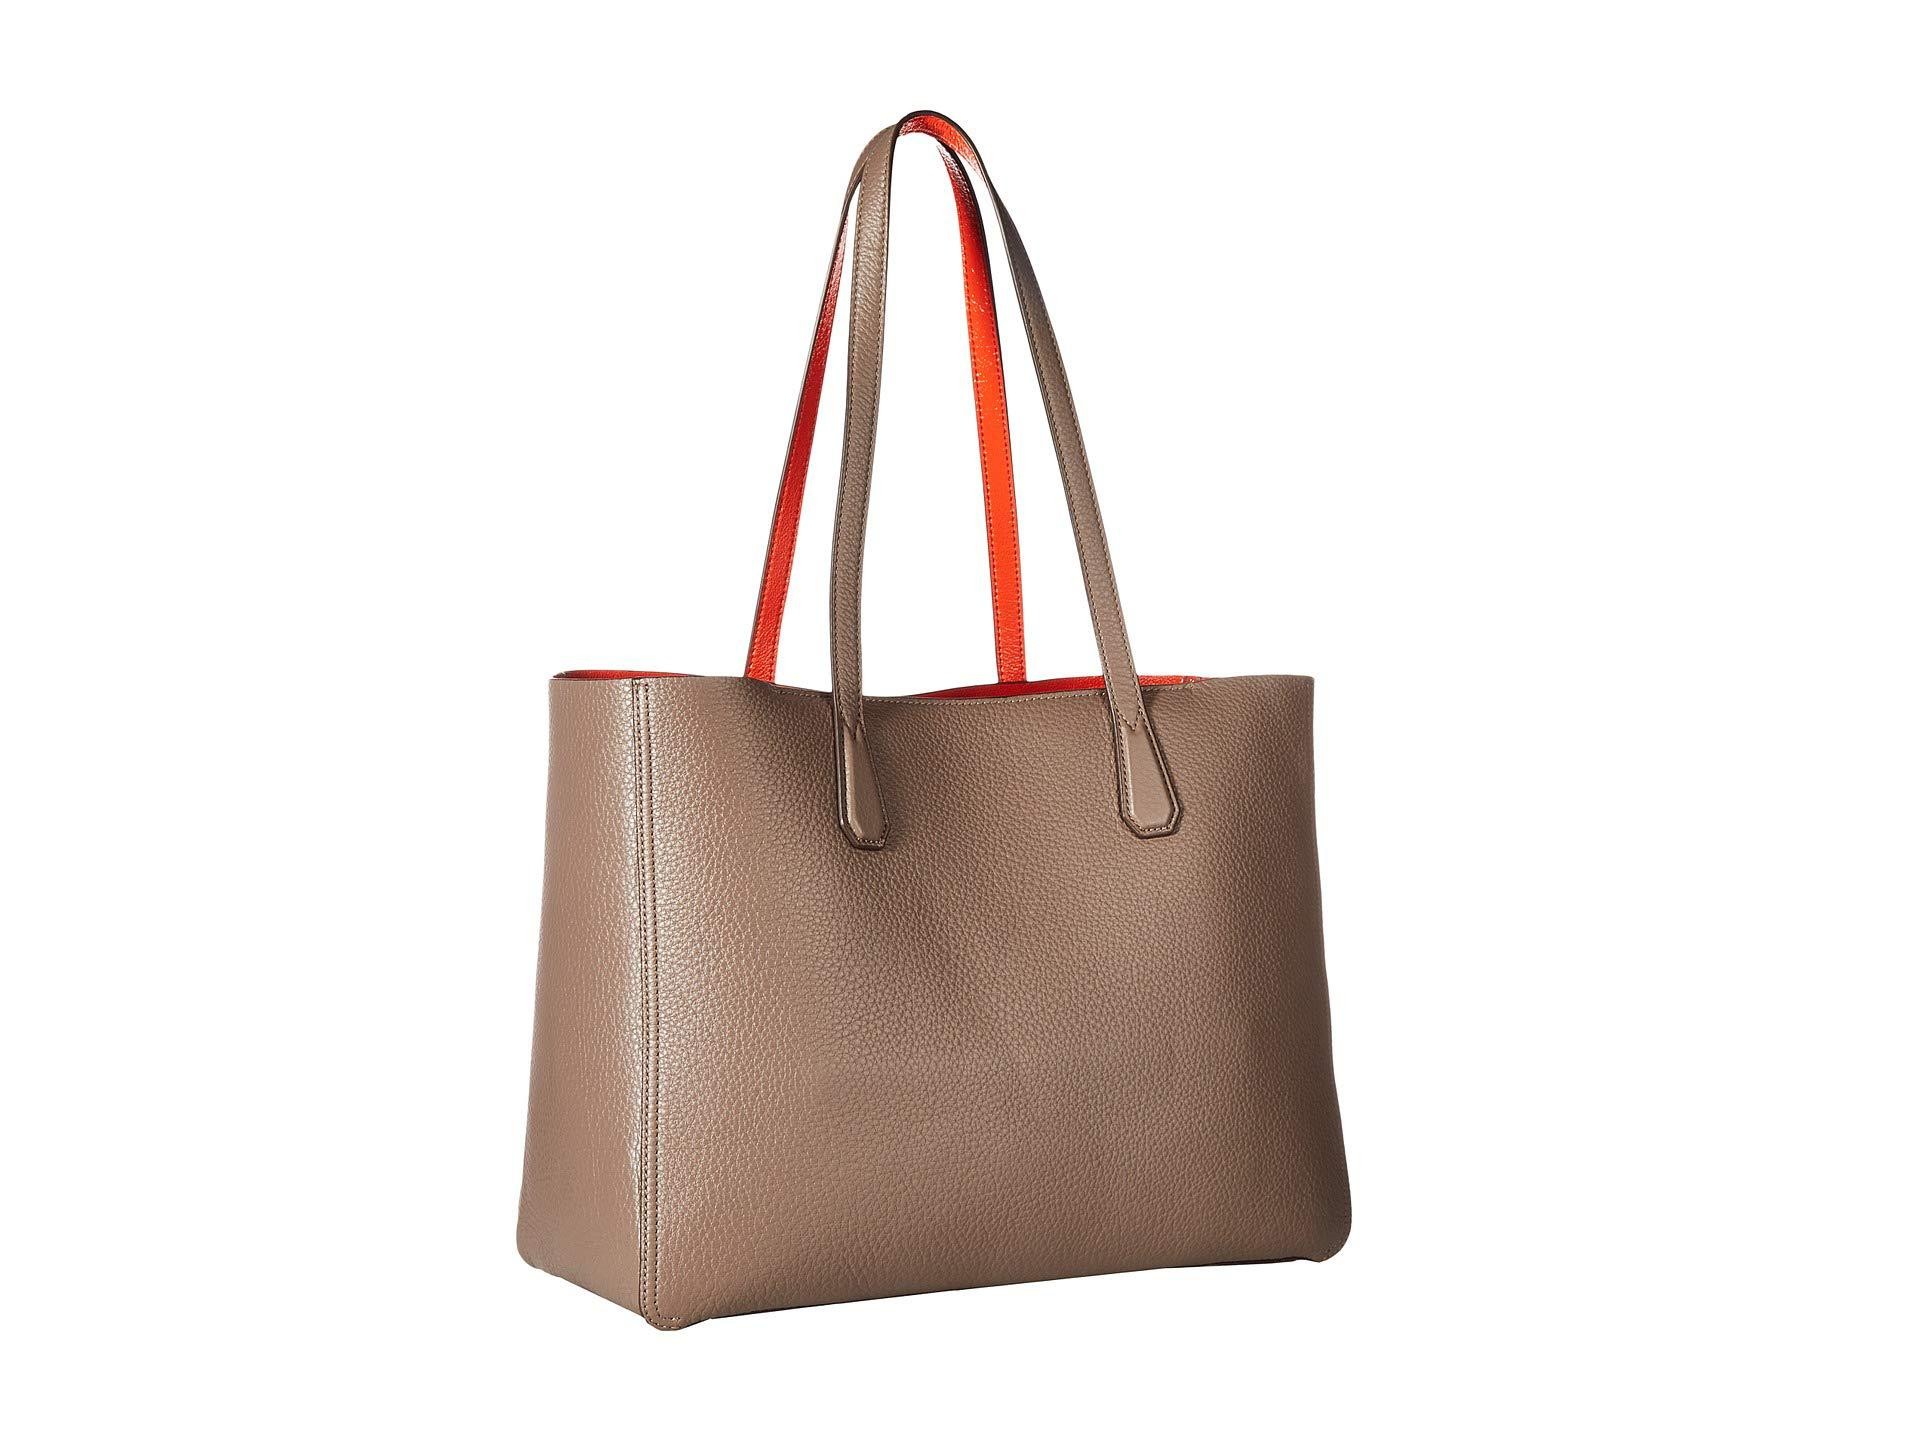 132cc32407 Tory Burch Perry Tote in Brown - Lyst